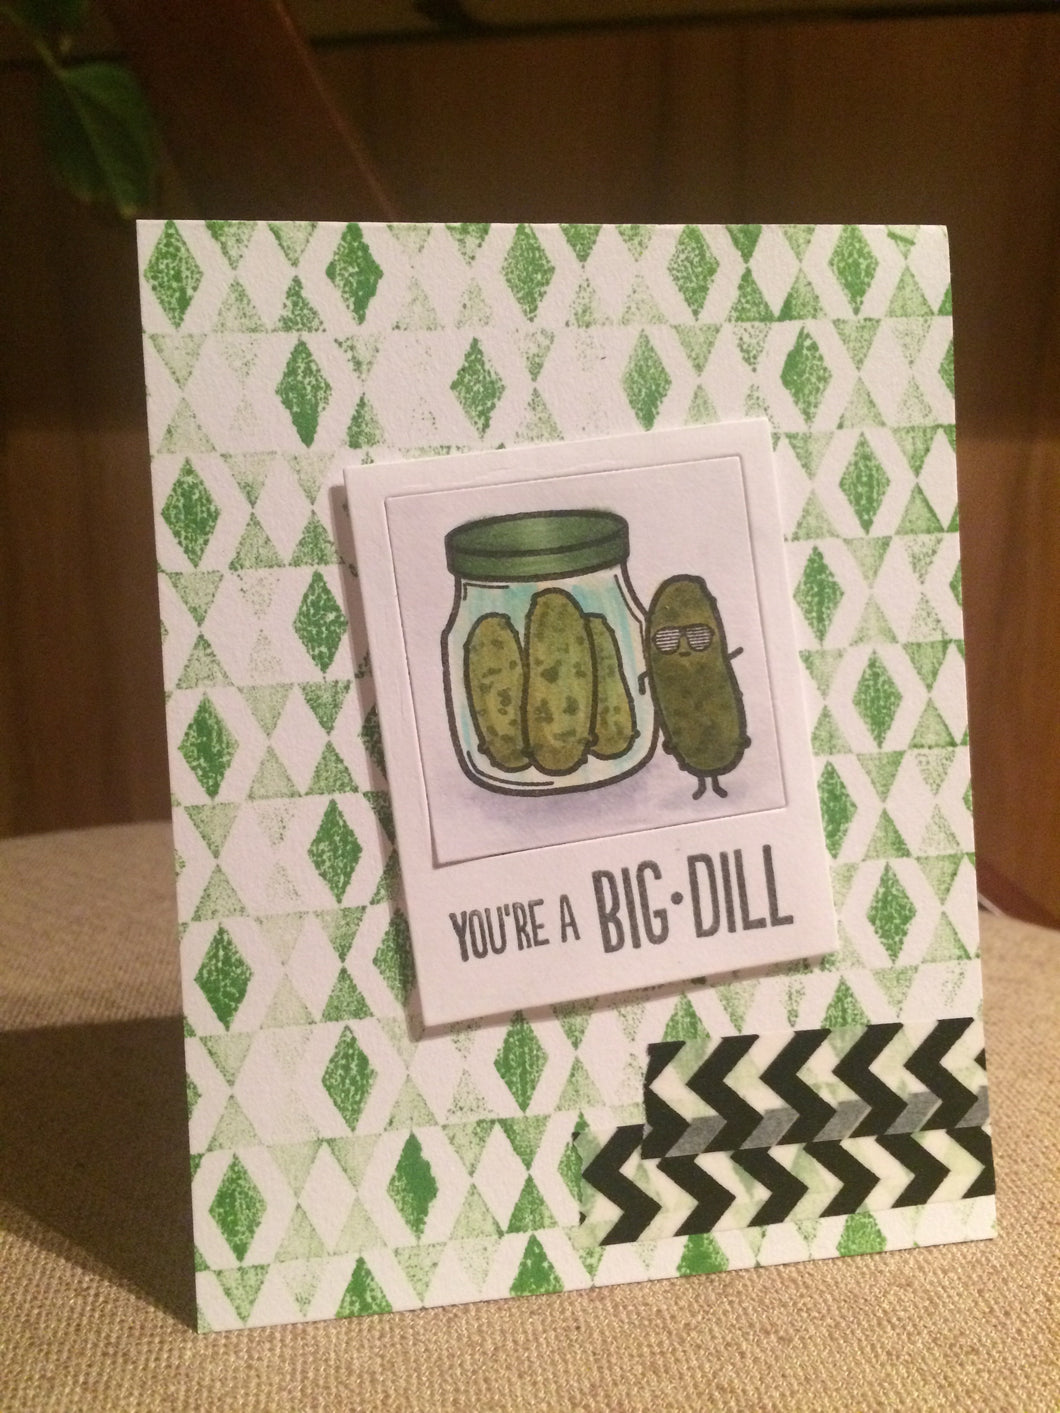 #thefrolickingfairy #sweetstampshop #heroarts #pickle #bigdill #bigdeal #handmadecards